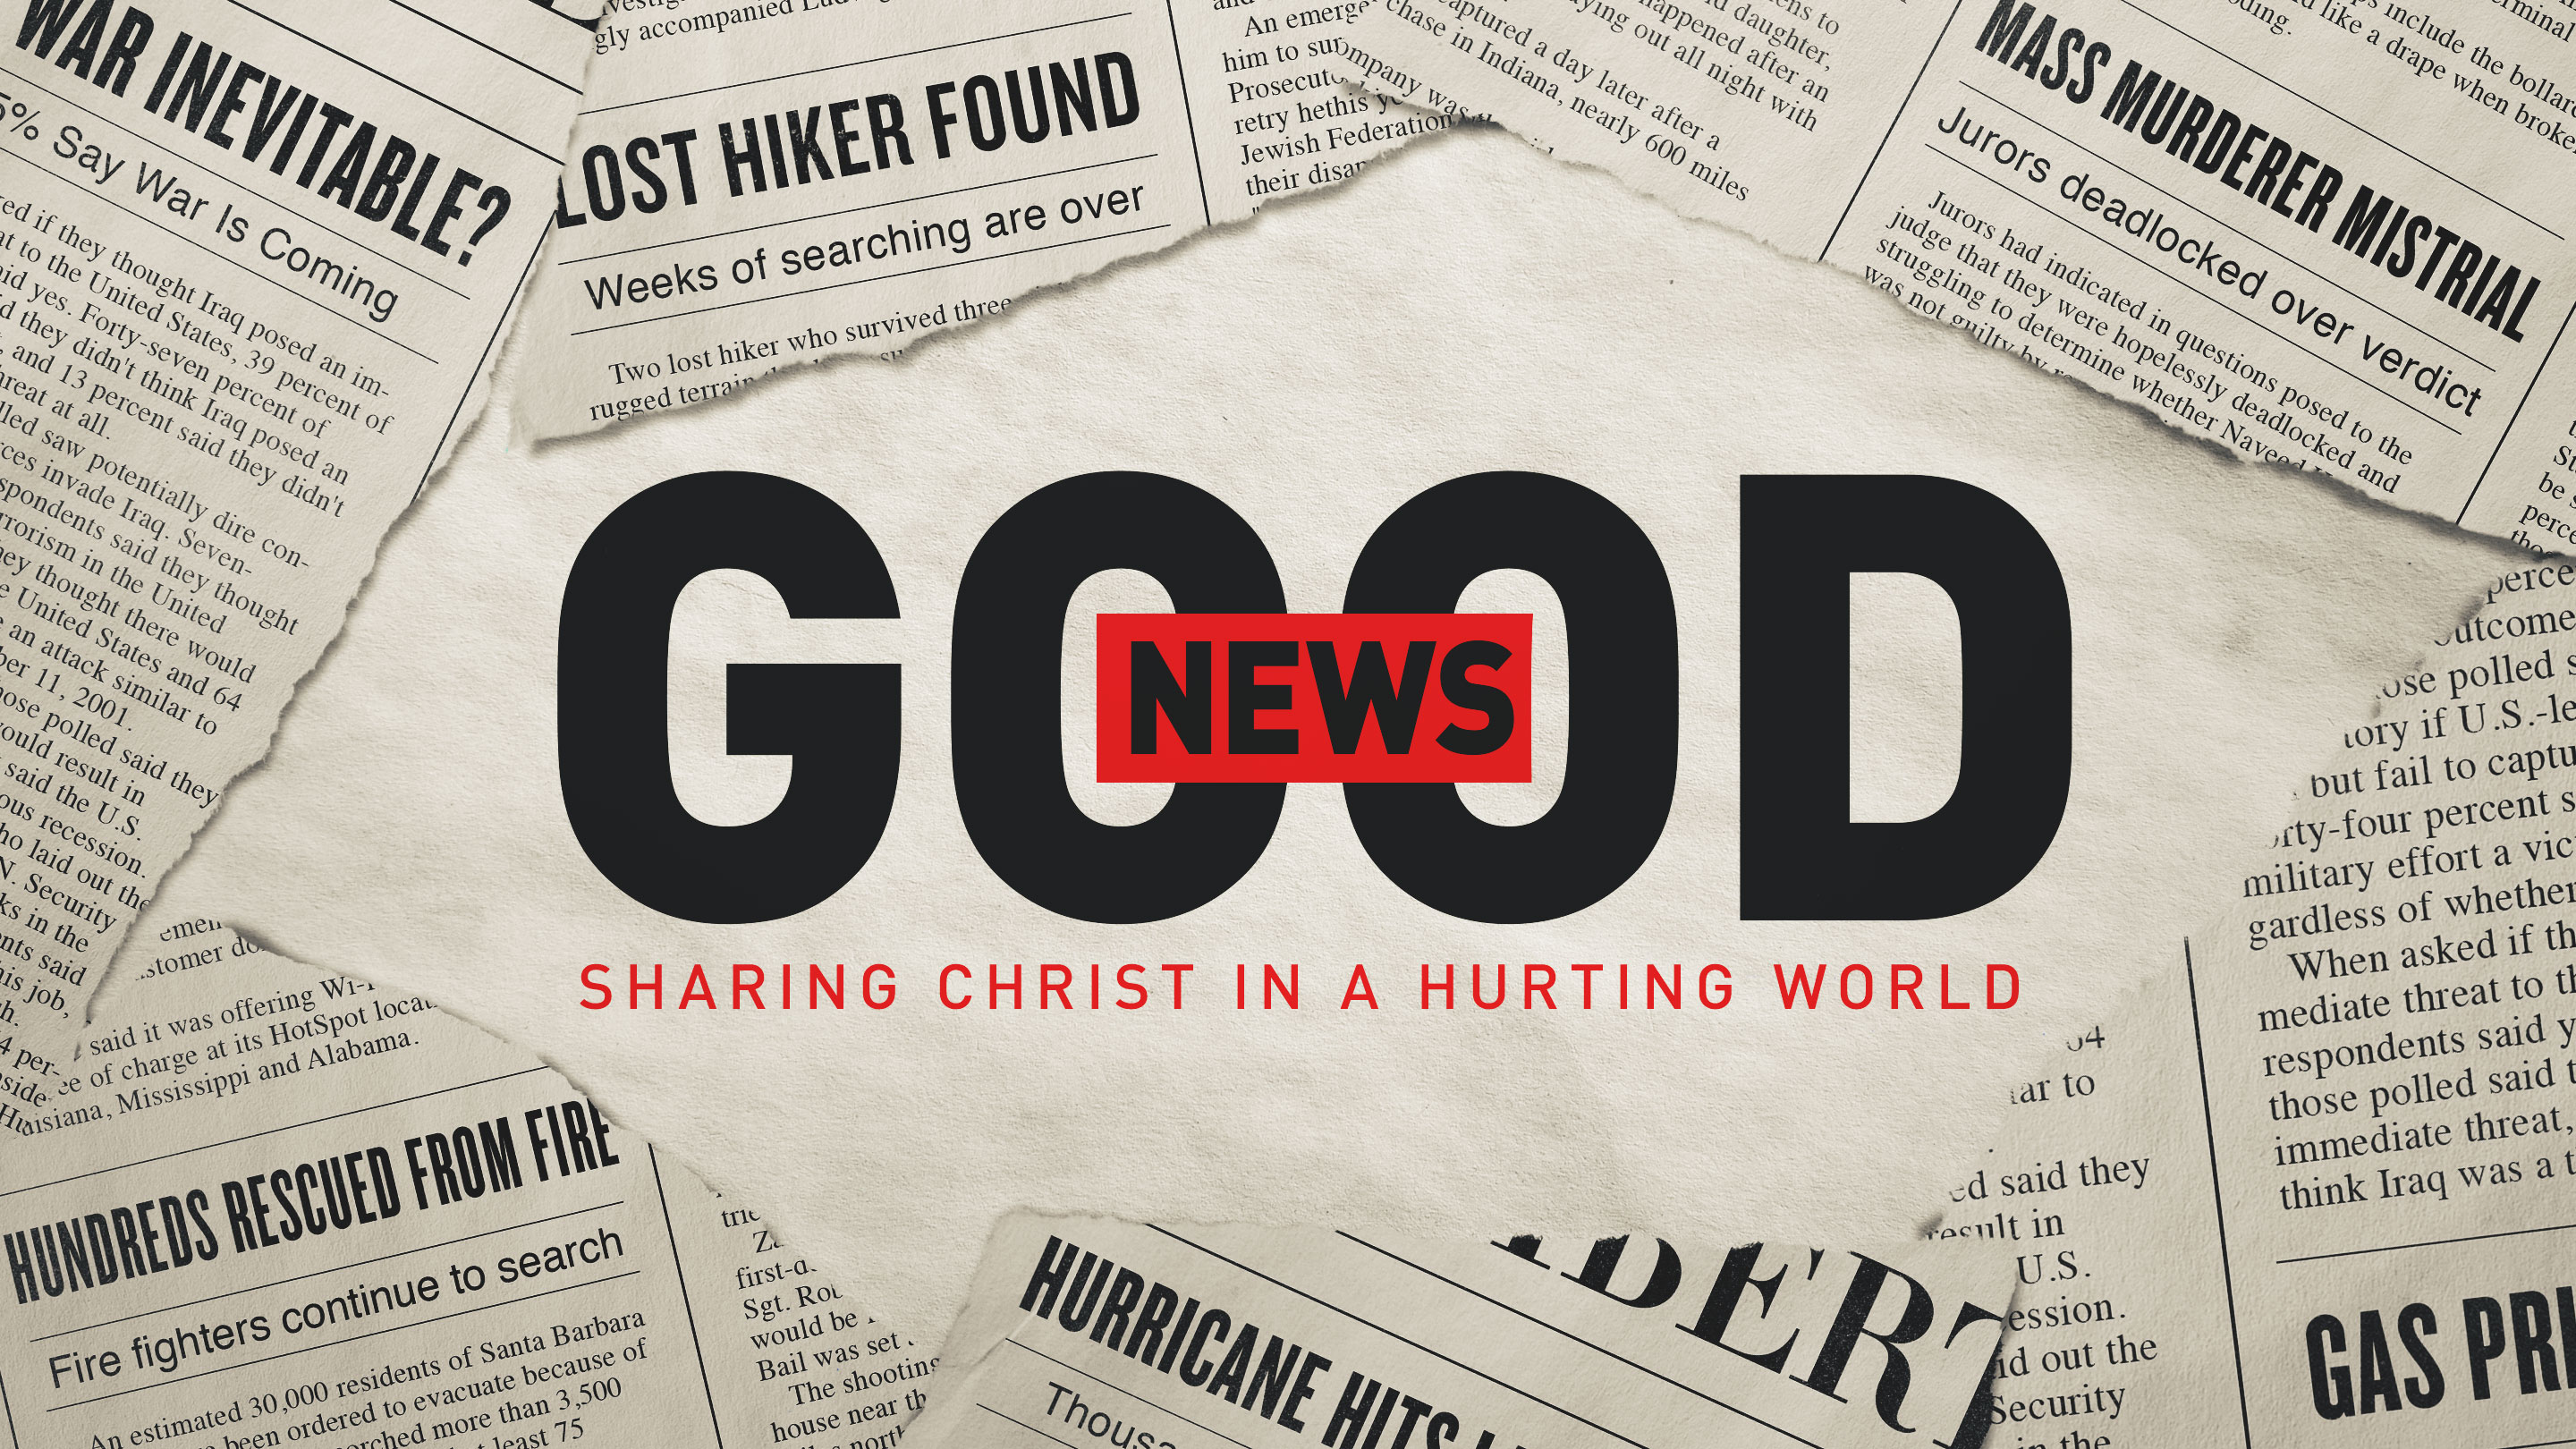 Good News - Sharing Christ In A Hurting World